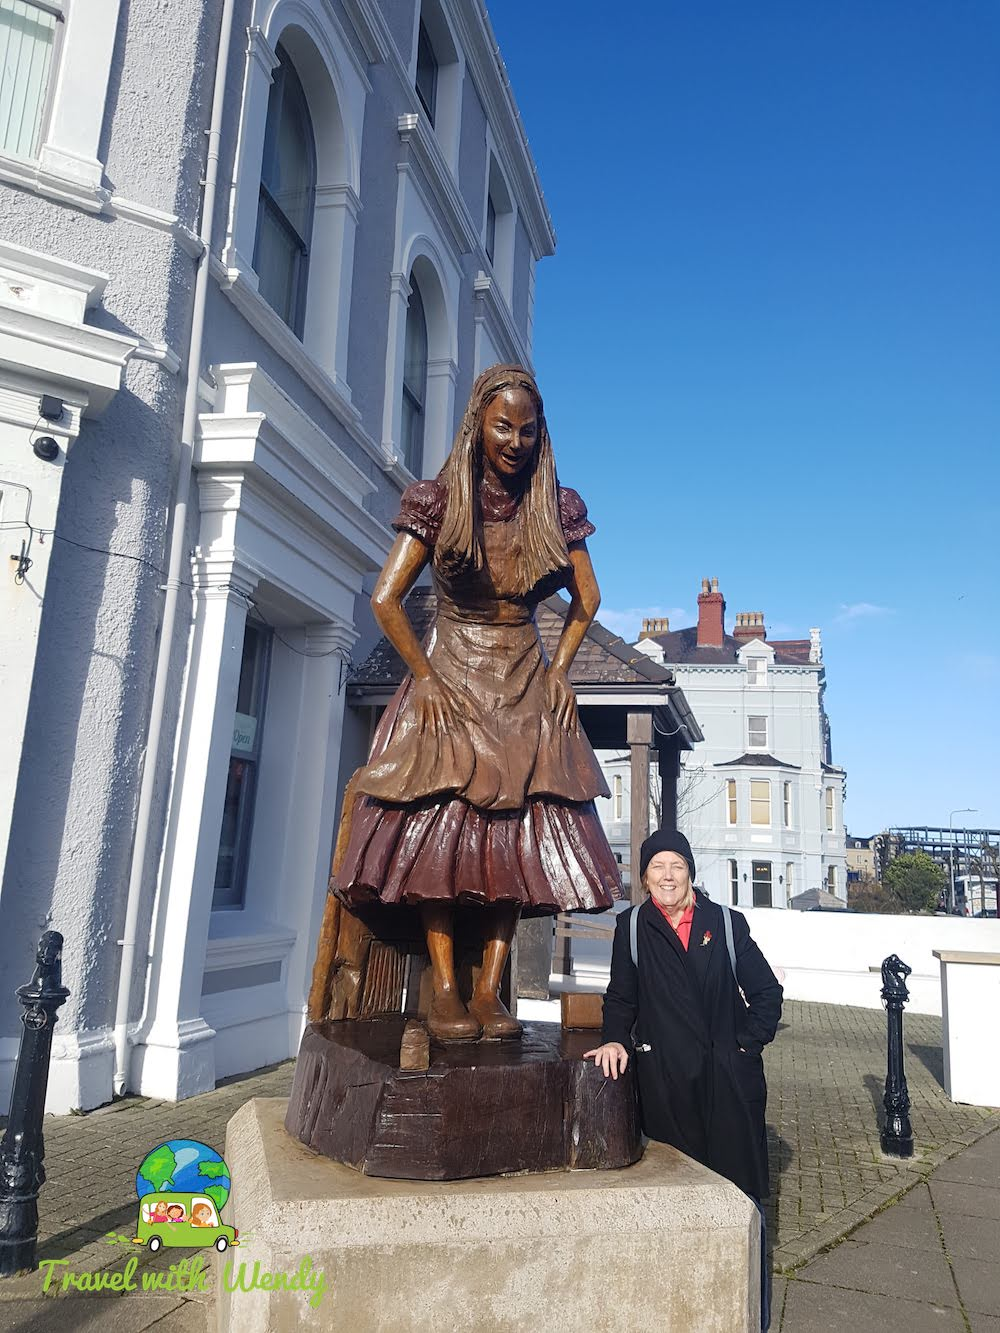 Frances and Alice - in North Wales England